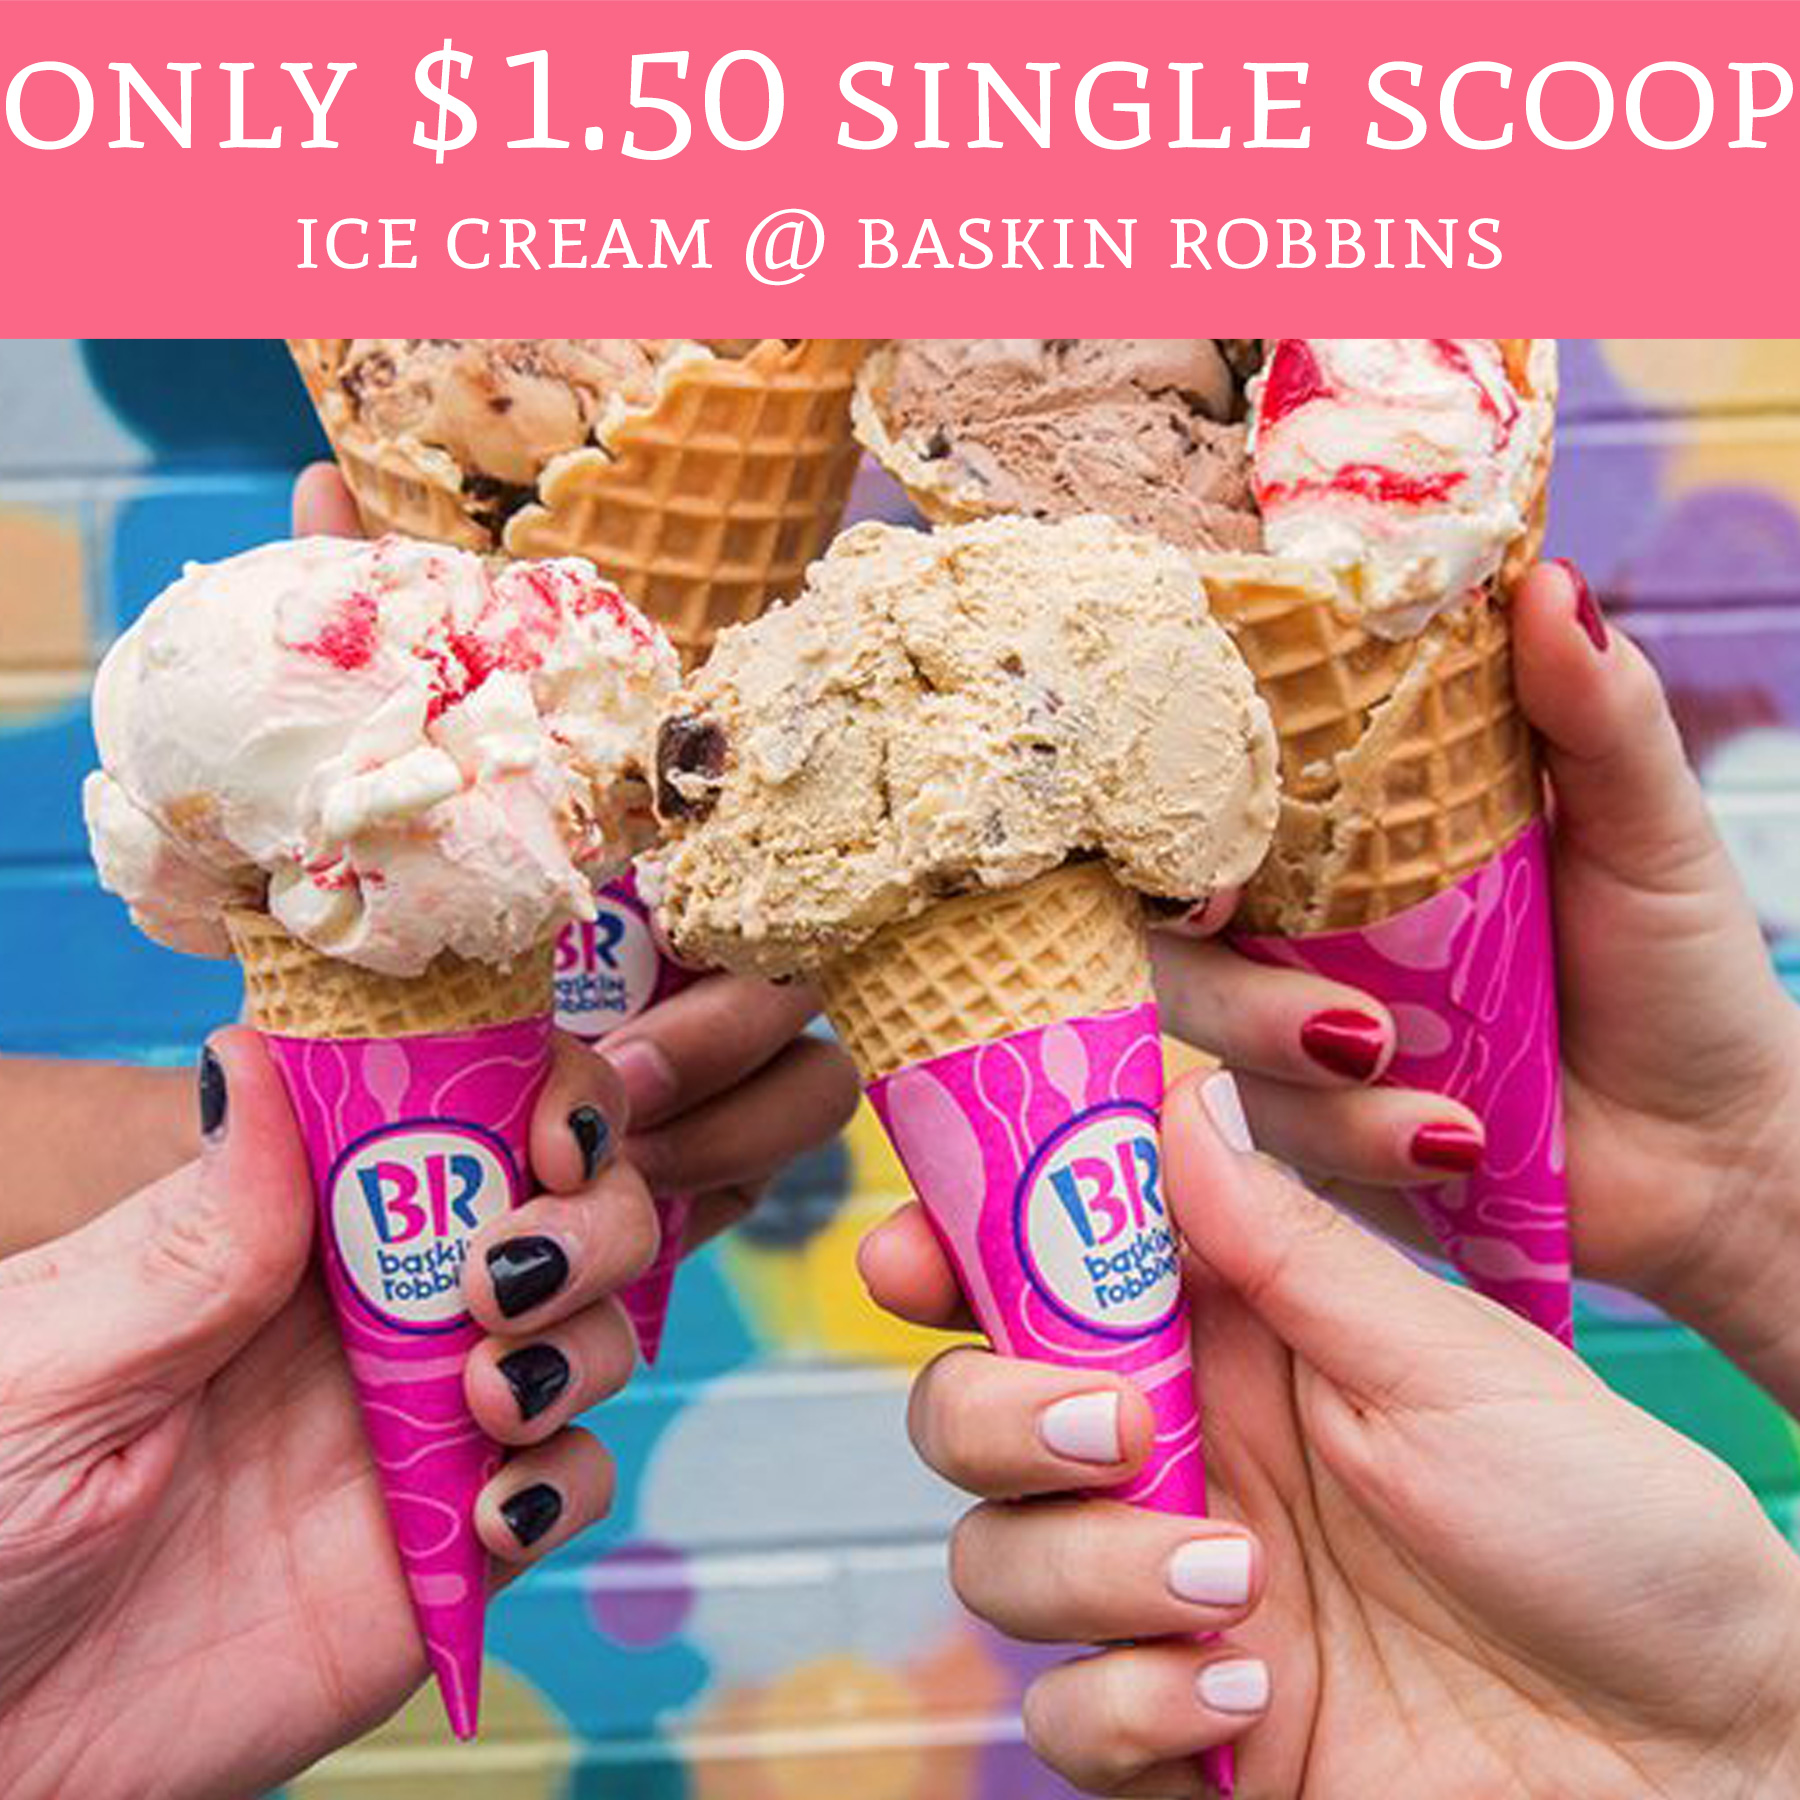 Today 5/31 Only - $1 50 Single Scoop Ice Cream @ Baskin